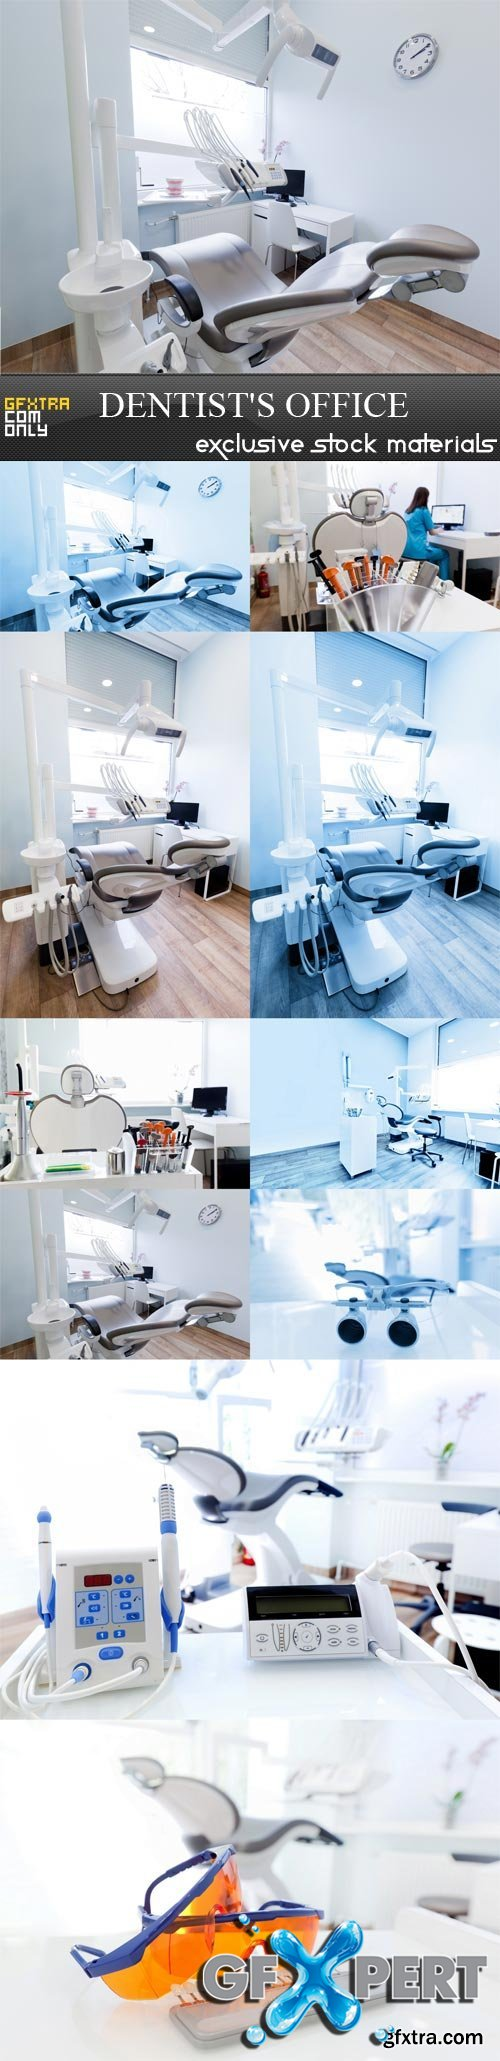 Dentist's office, 10 UHQ JPEG